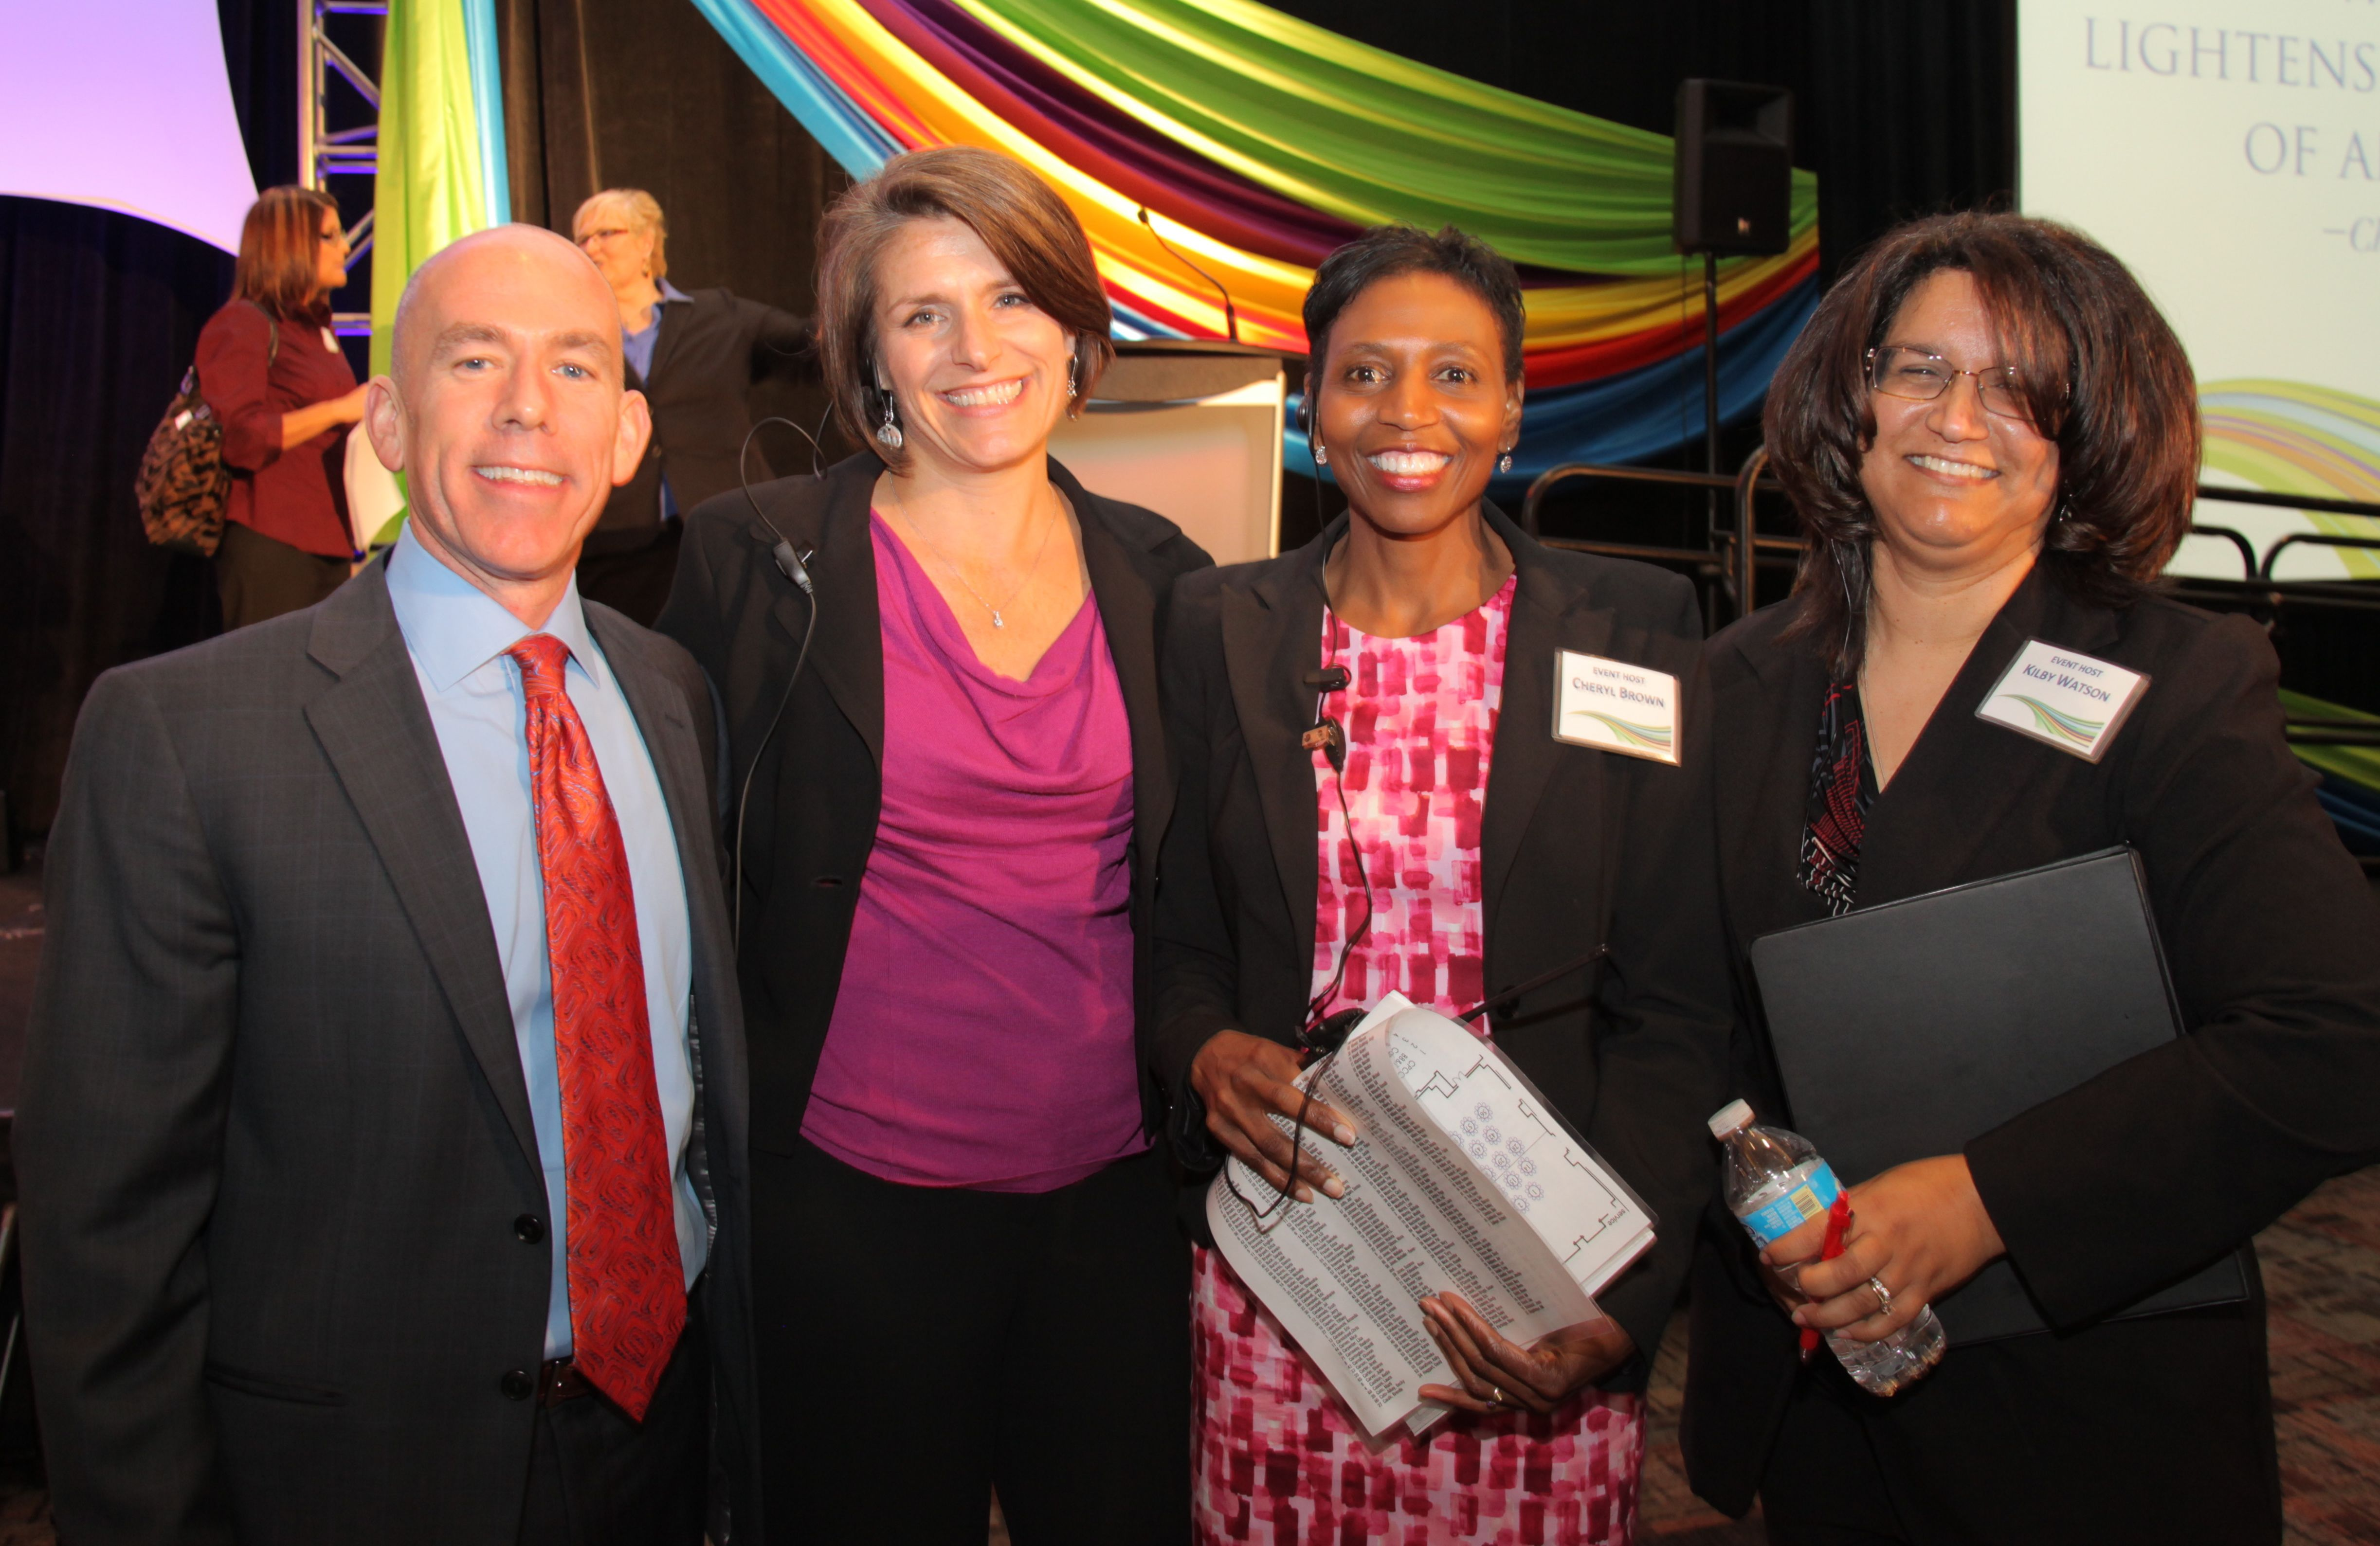 Goodwill Honors Community Leaders at 2013 Cornerstone